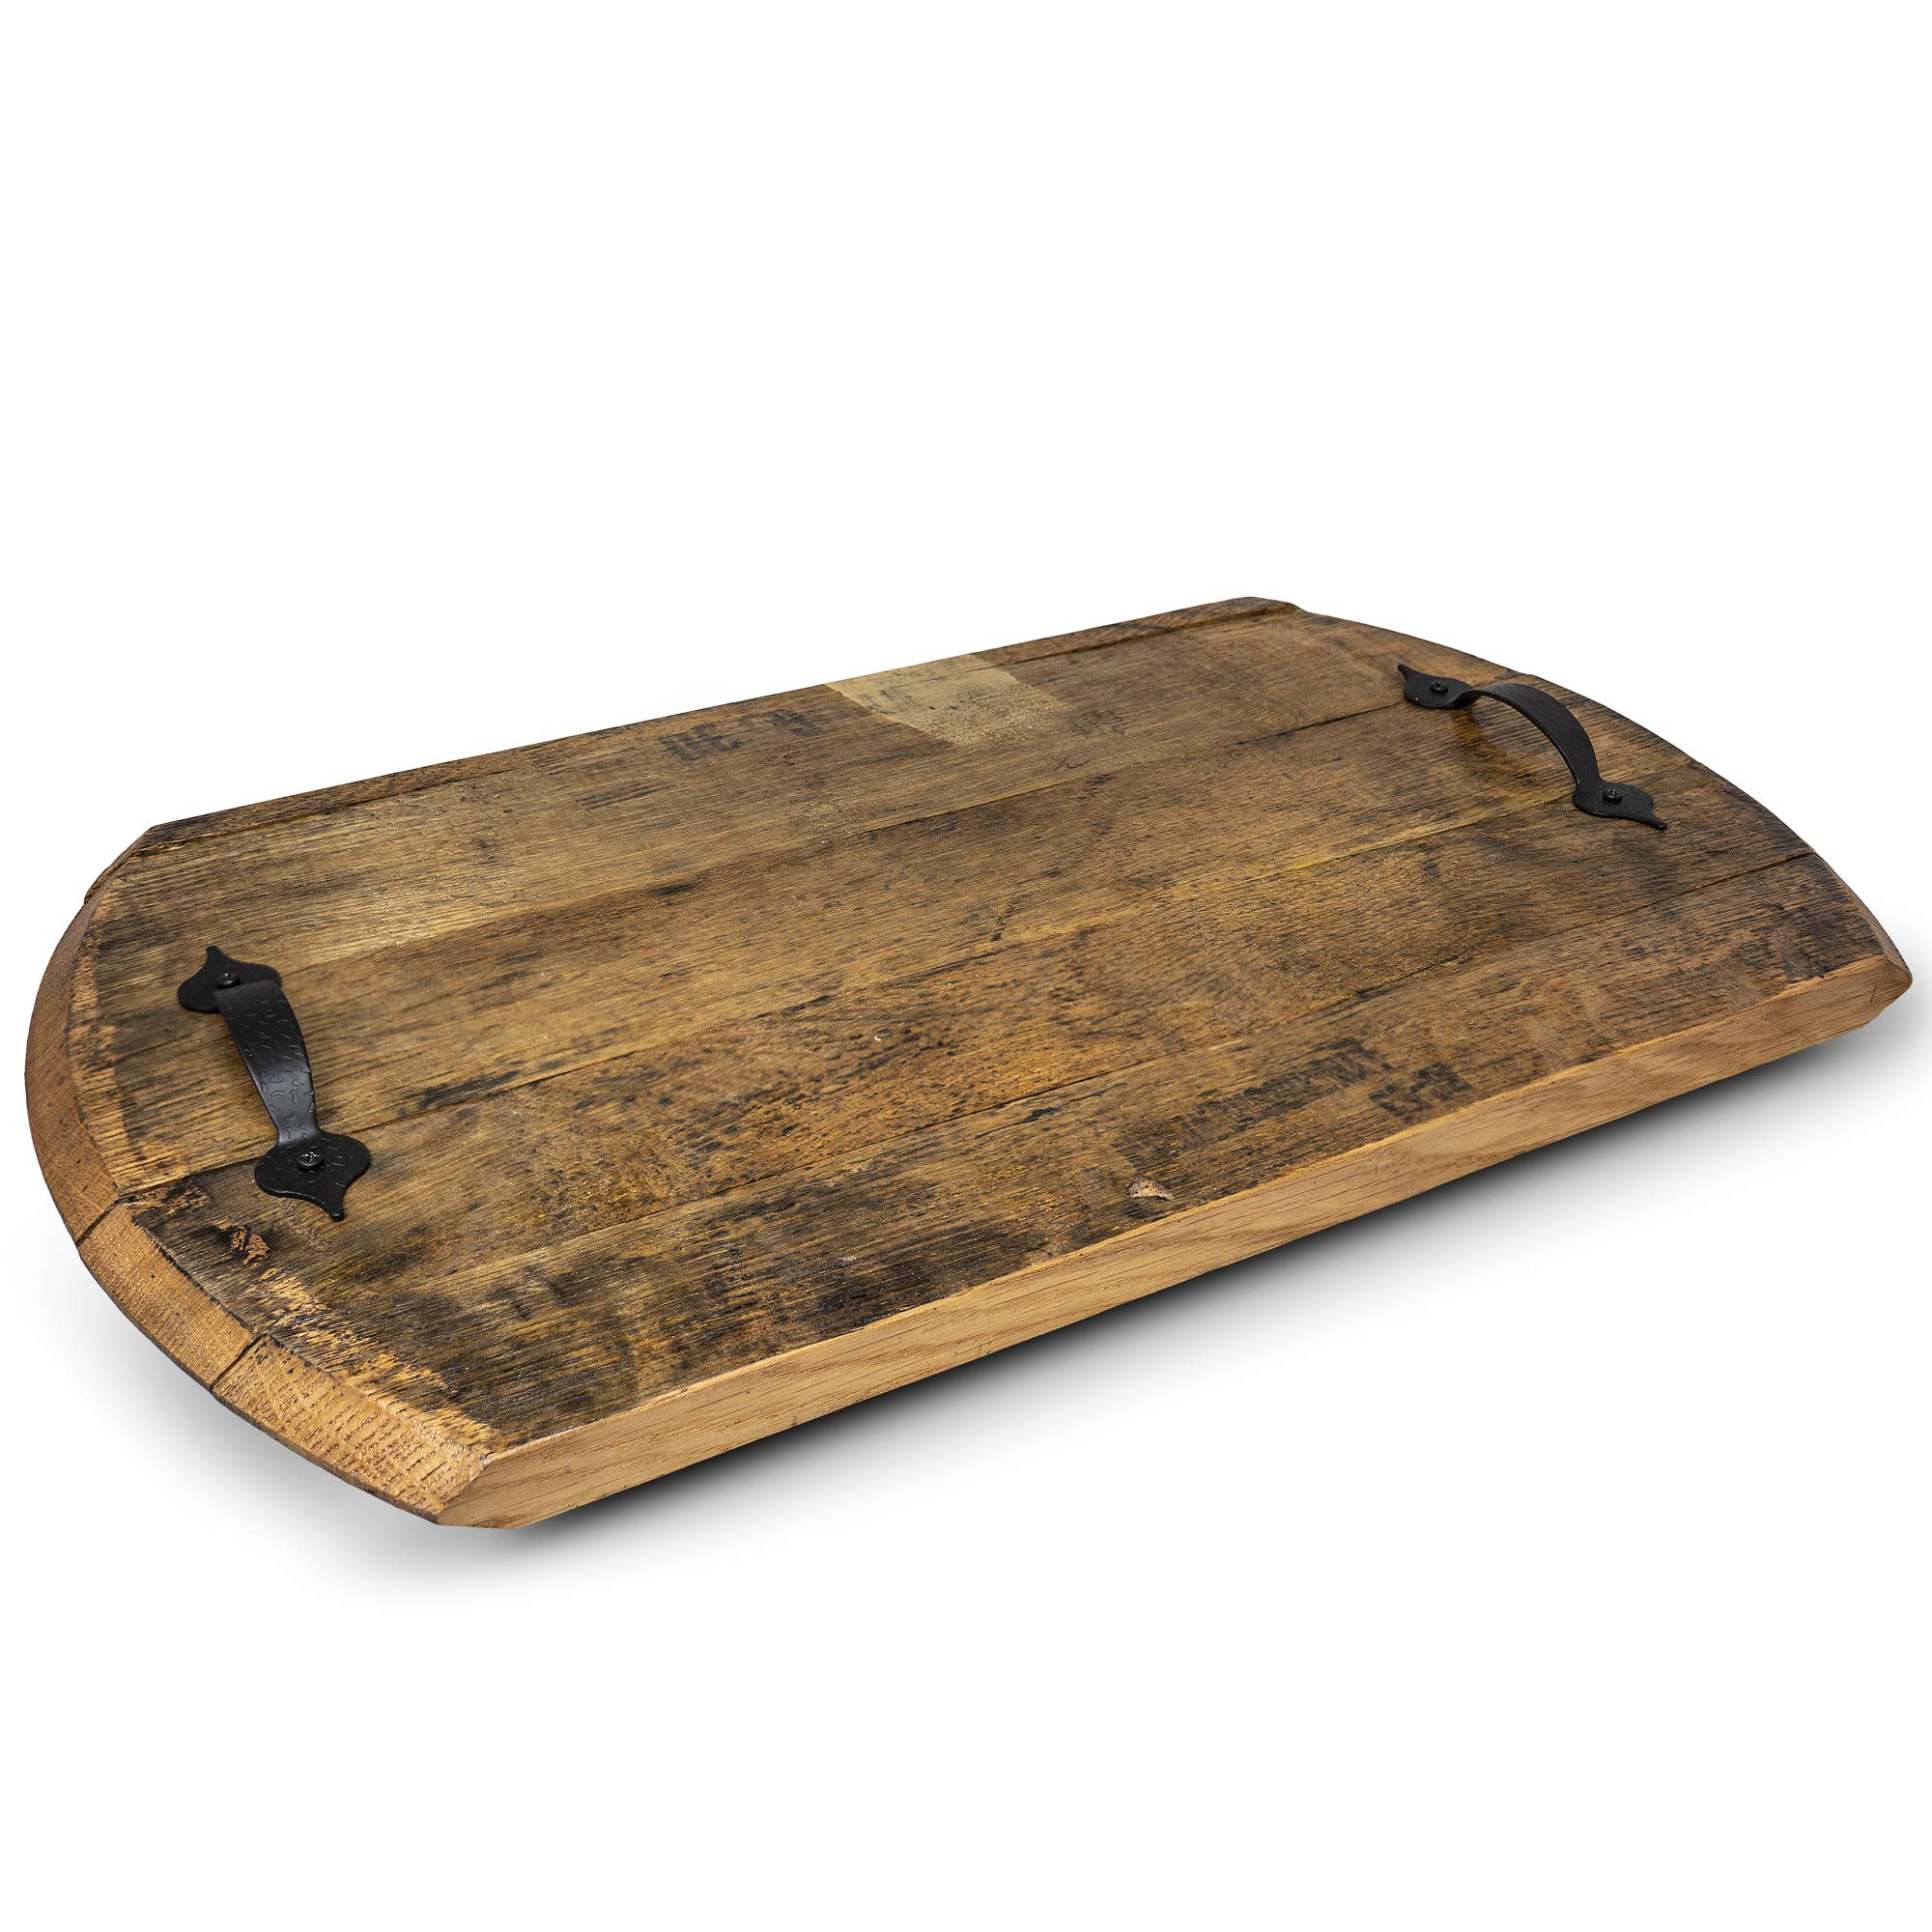 Reclaimed Rustic Bourbon Barrel Serving Tray with Handles- Made in USA from Genuine Oak Wood Barrels